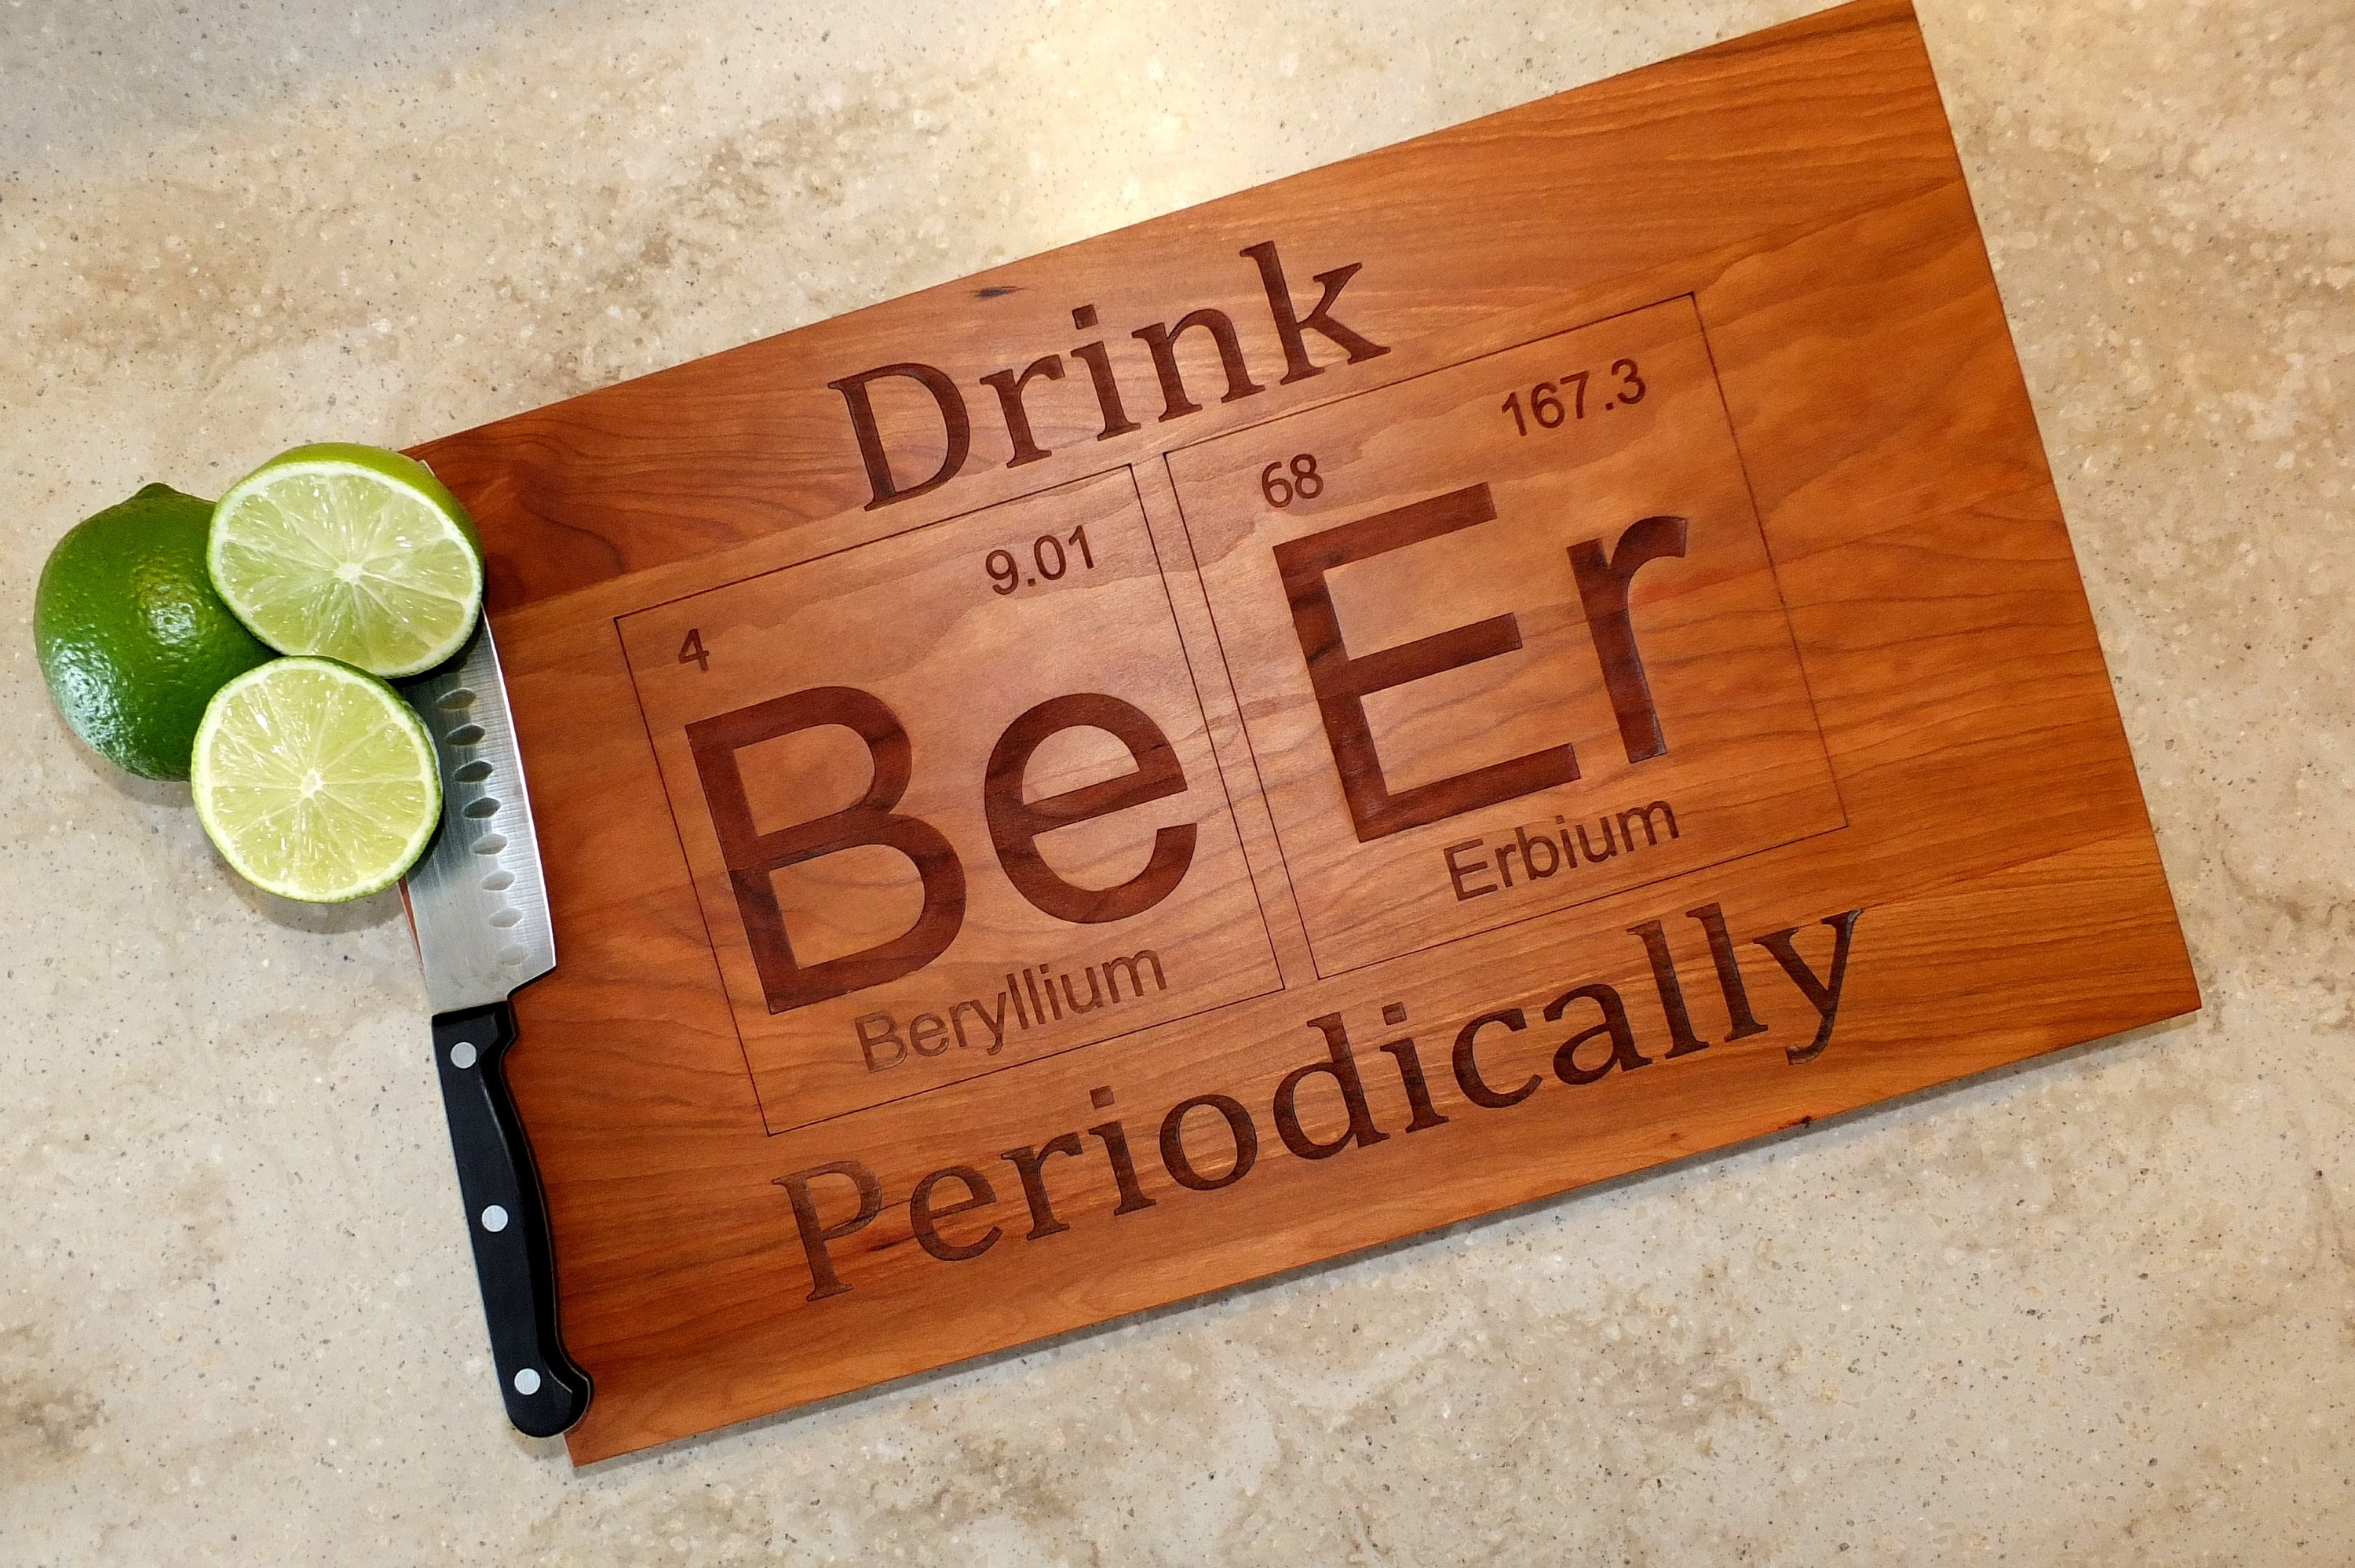 Drink beer periodic table inspired cutting board engraved on maple drink beer periodic table inspired cutting board engraved on maple walnut cherry or white oak wood bar kitchen housewarming gift urtaz Images